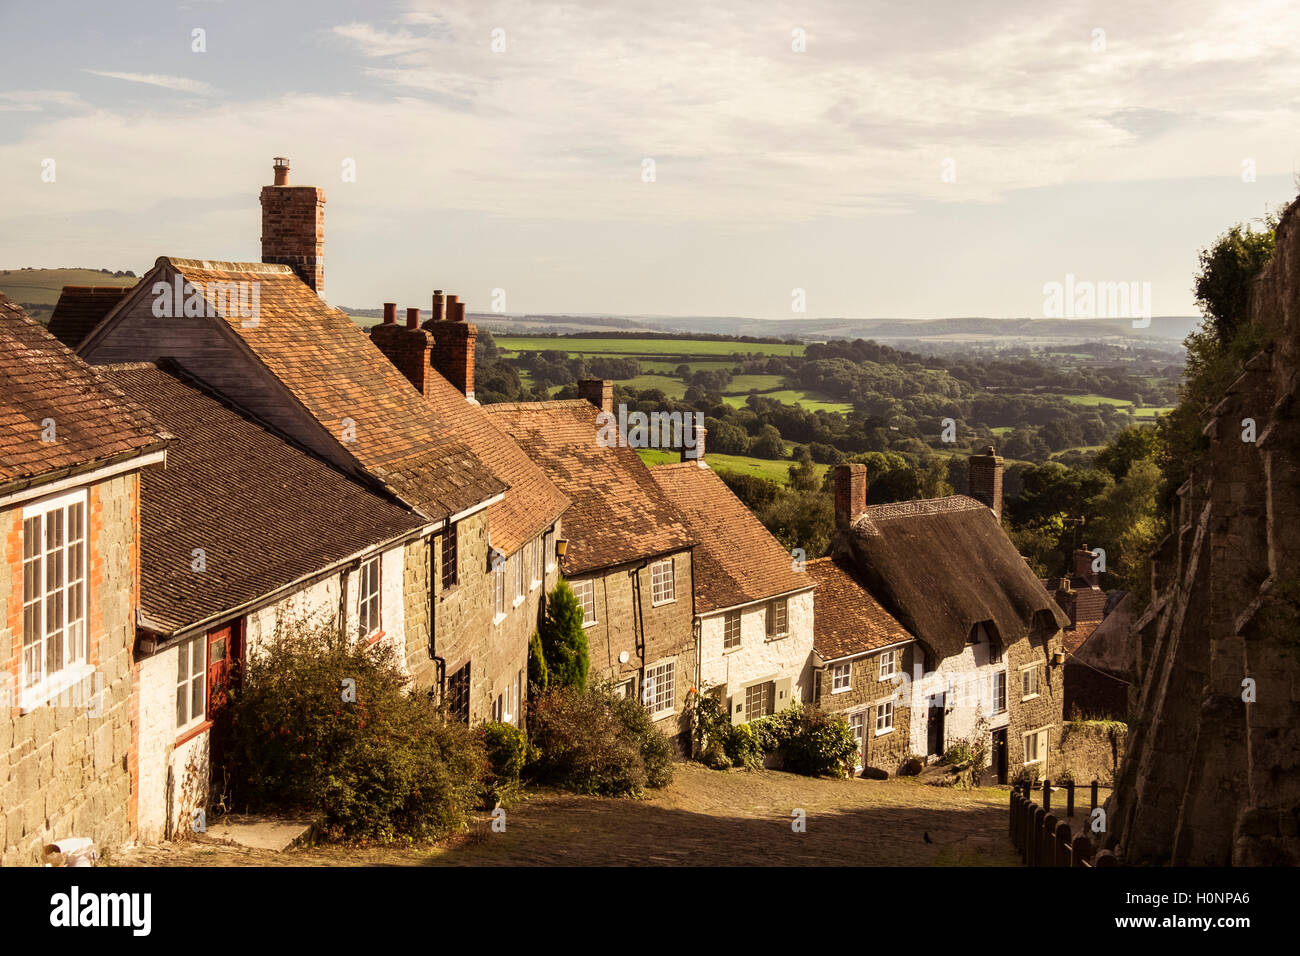 Gold Hill Shaftsbury site of Hovis Ad - Stock Image